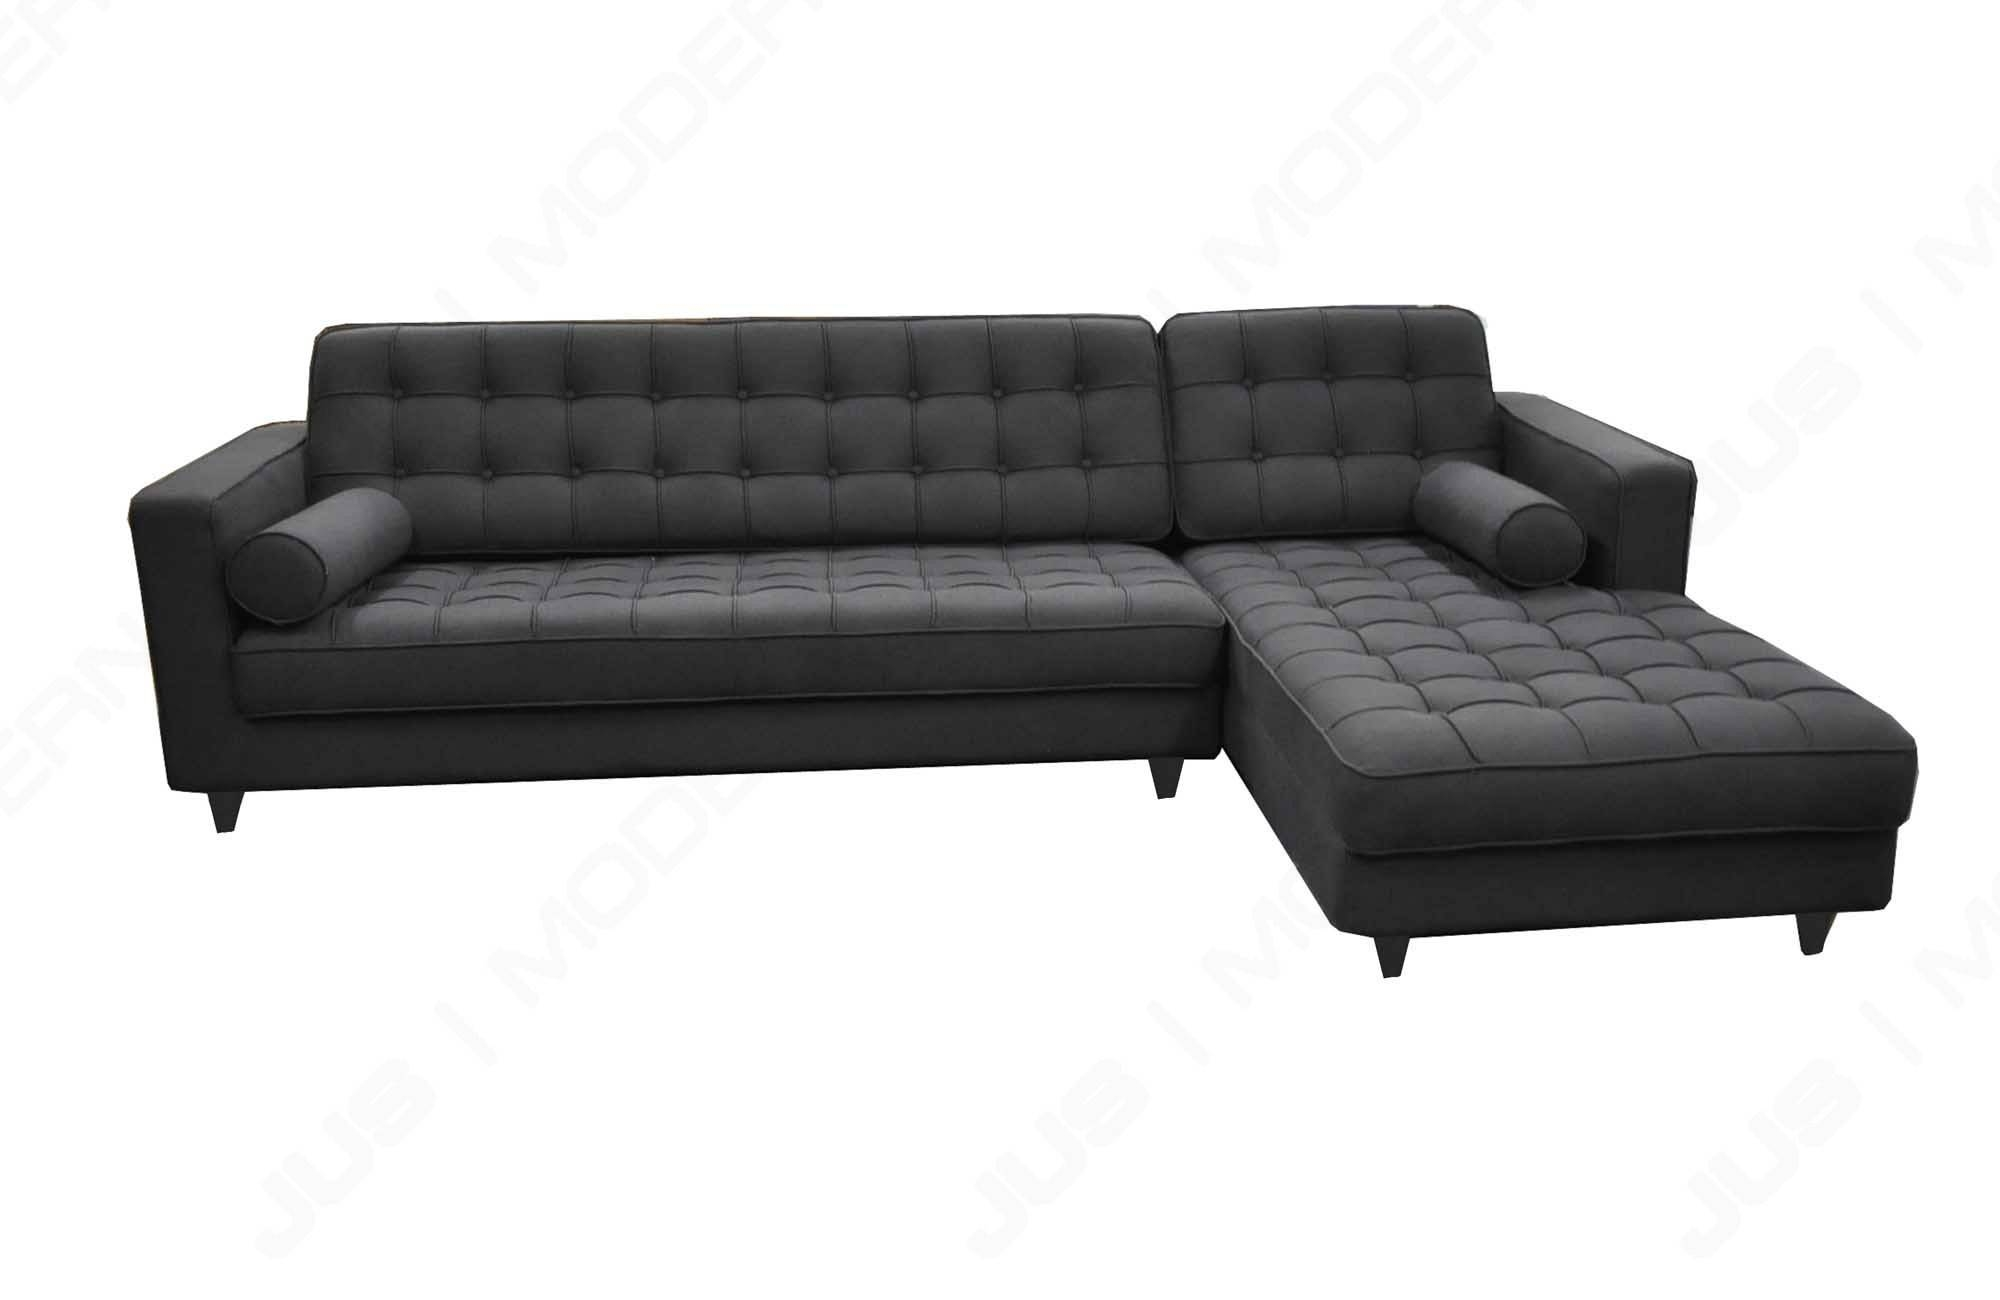 Alluring L Shaped Sofa Design Come With Grey Modern L Shaped with L Shaped Fabric Sofas (Image 4 of 30)